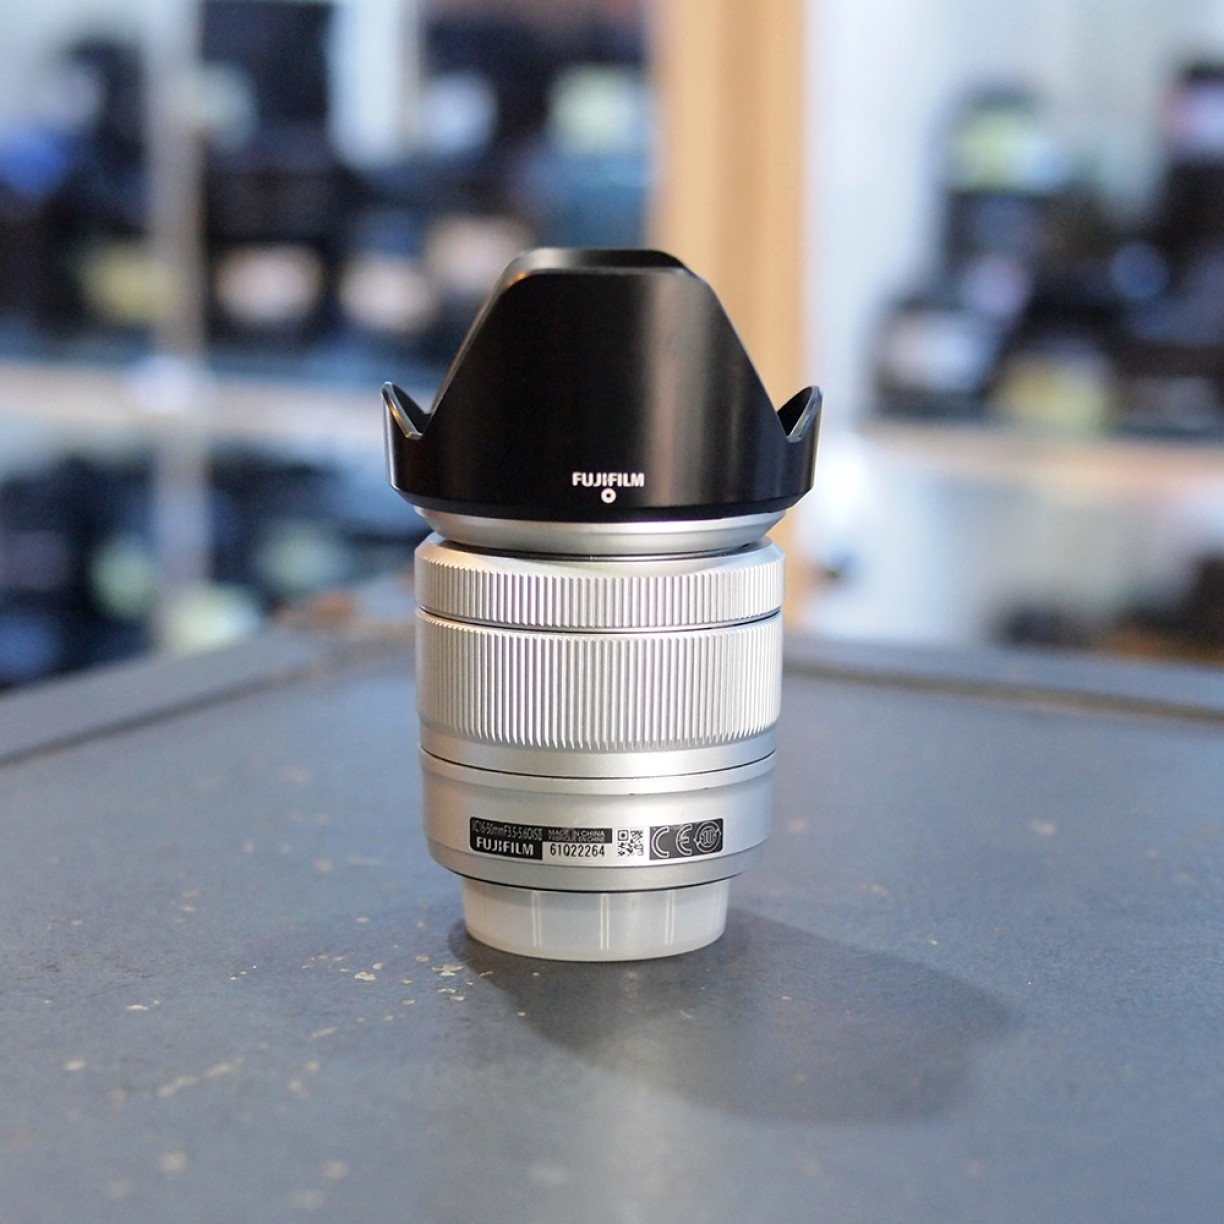 Fujifilm XC 16-50mm f/3.5-5.6 OIS - Good Condition | 2264